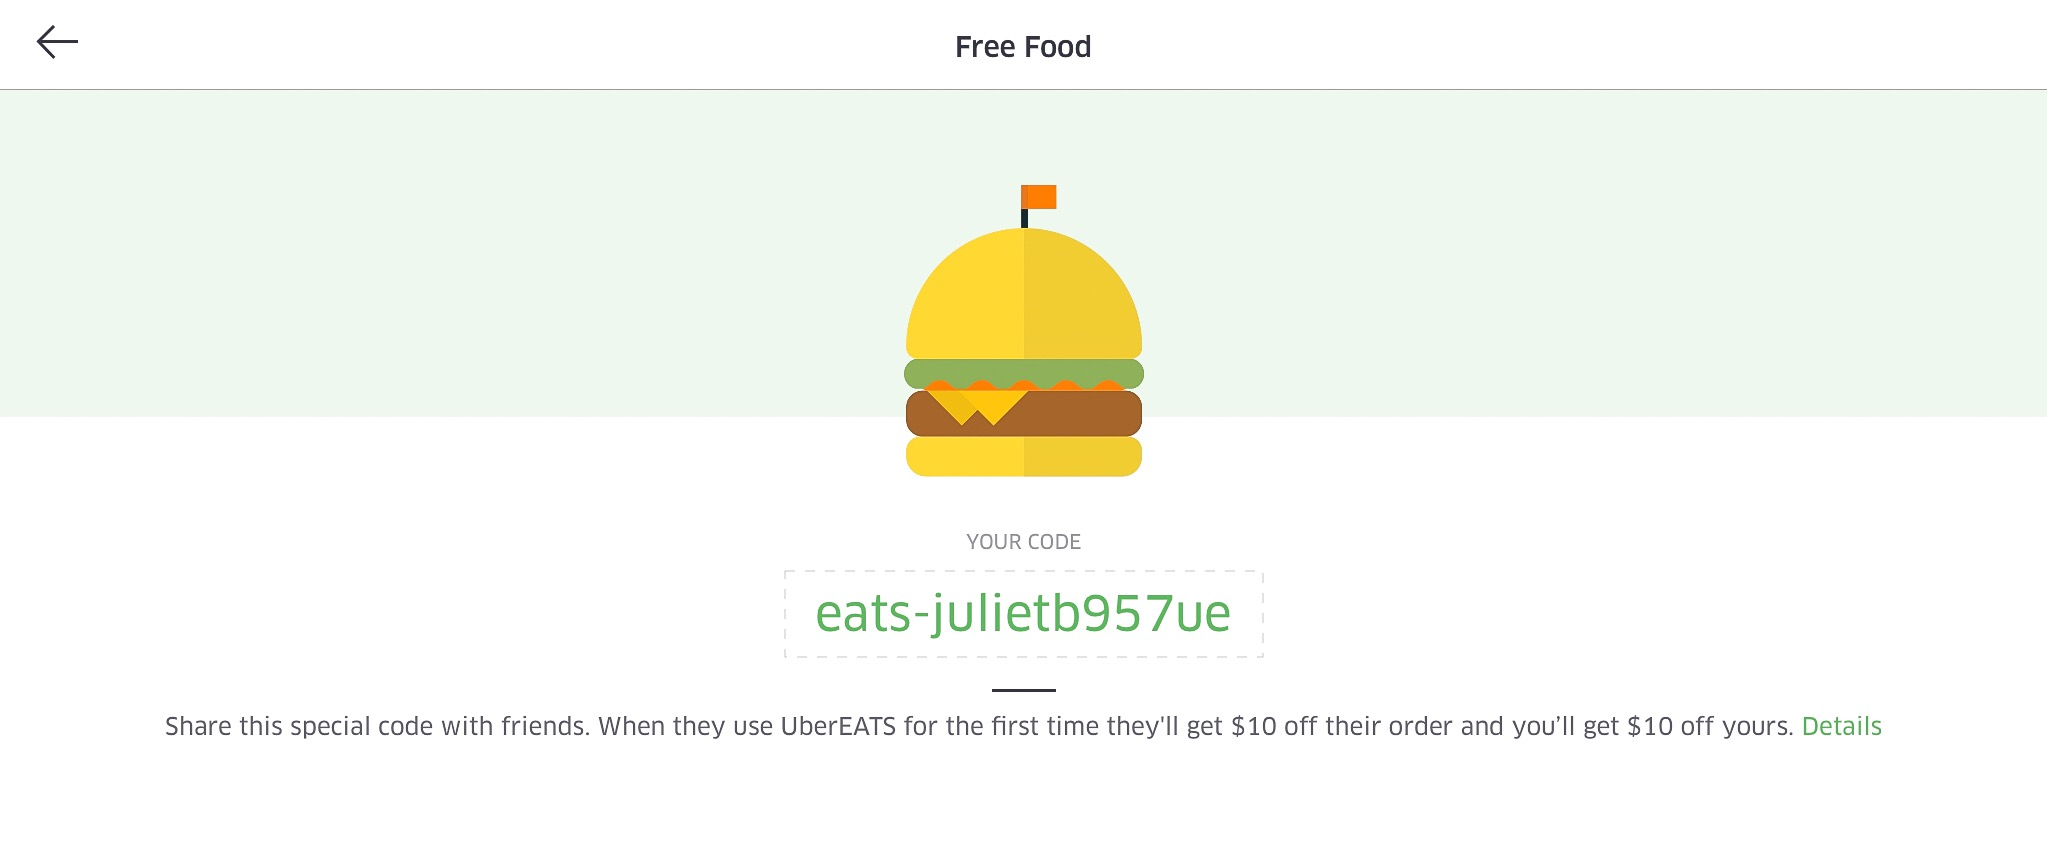 Free Food for Joining UberEATS